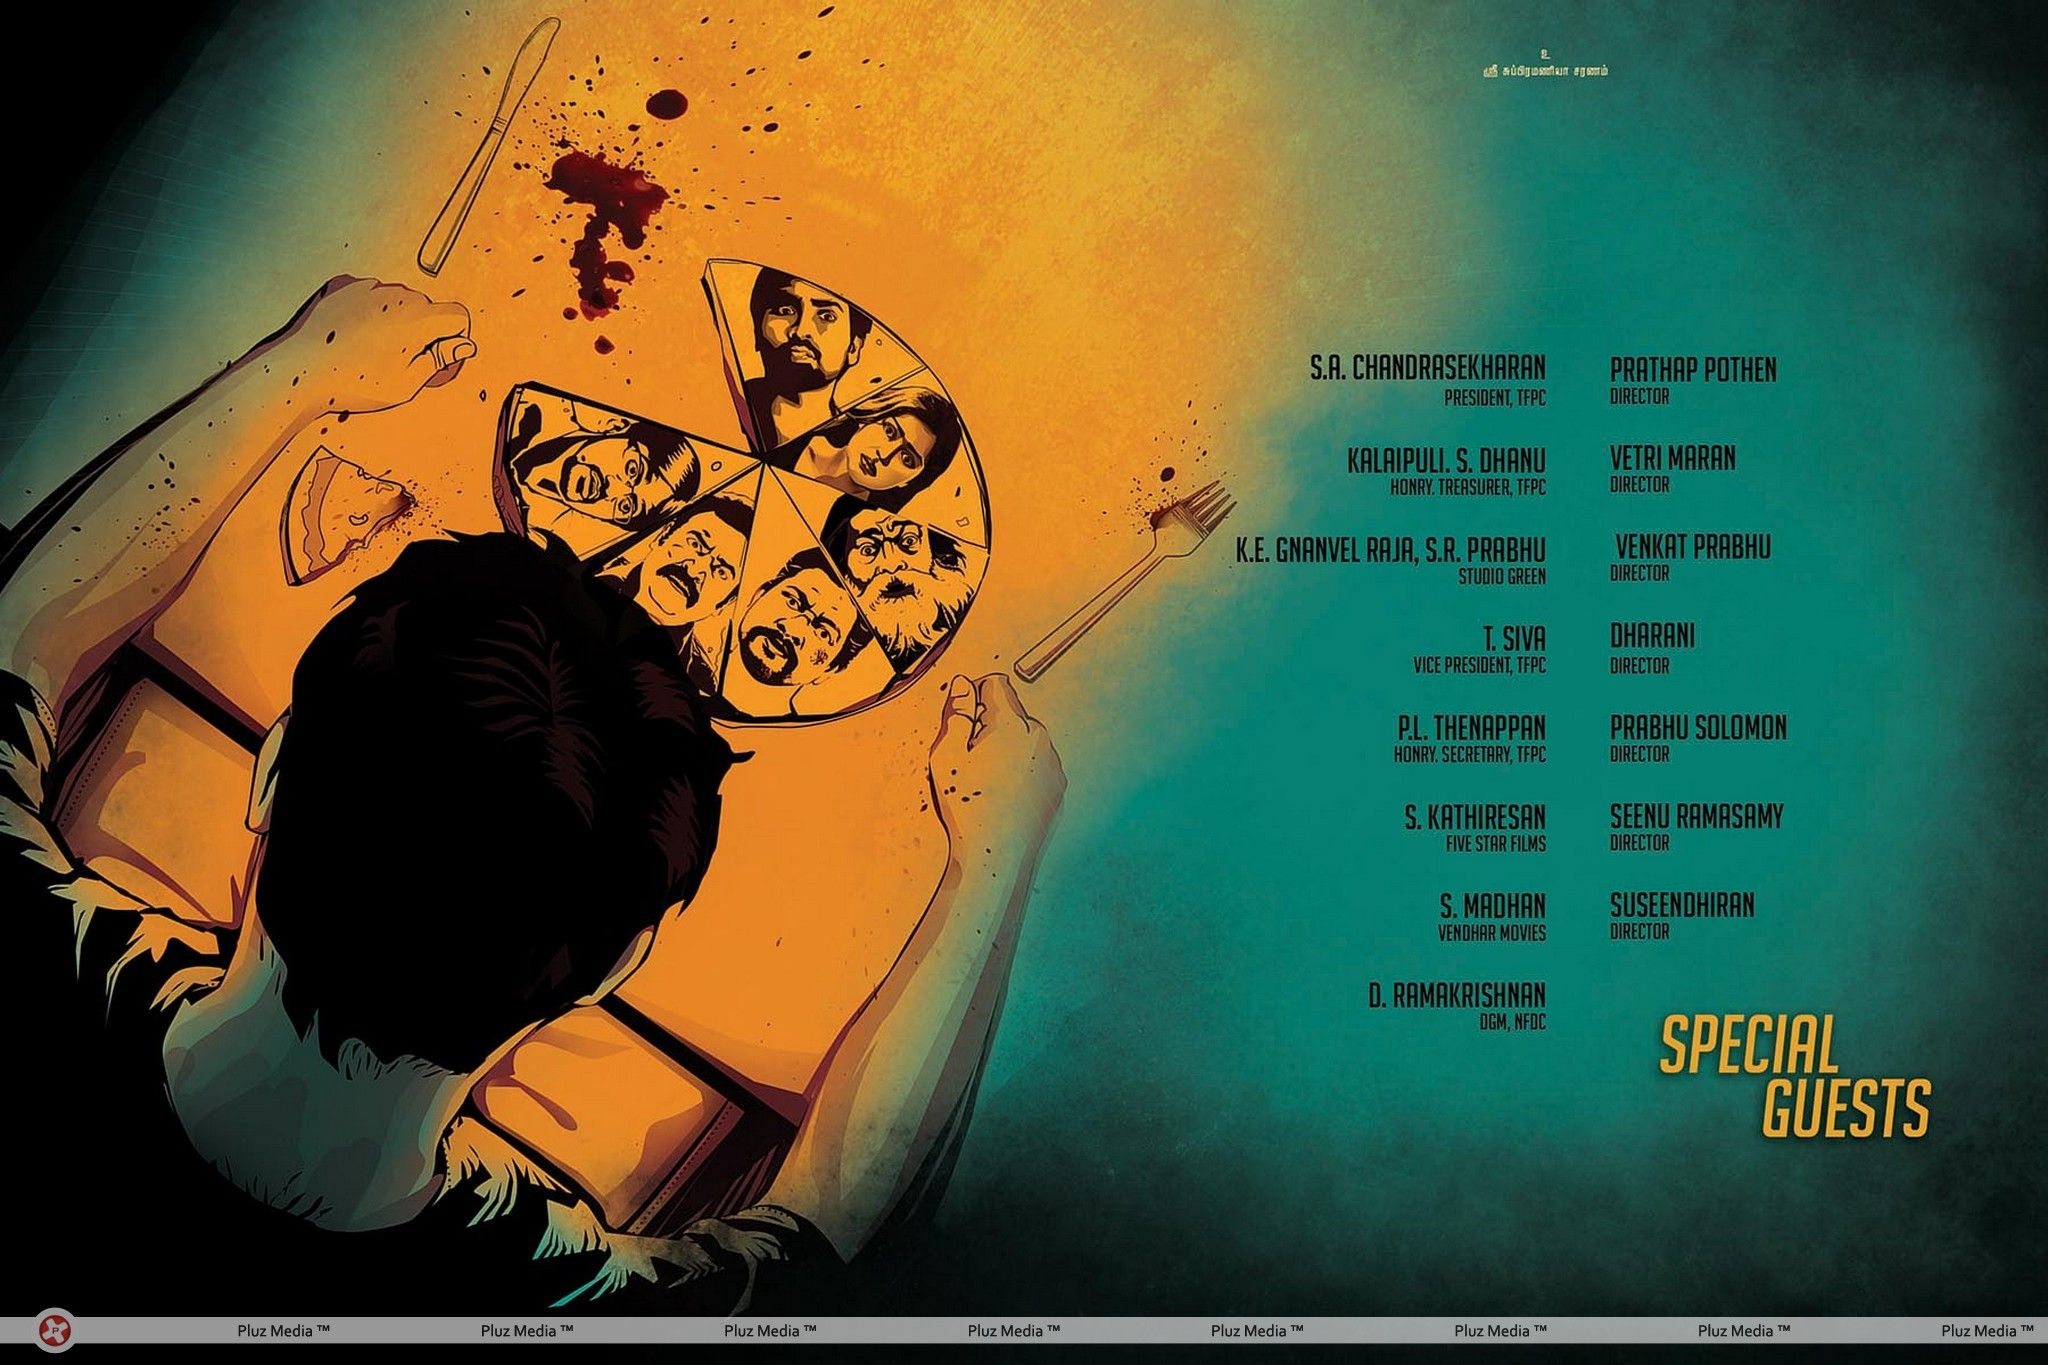 Pizza Movie Audio Launch Invitation Wallpapers